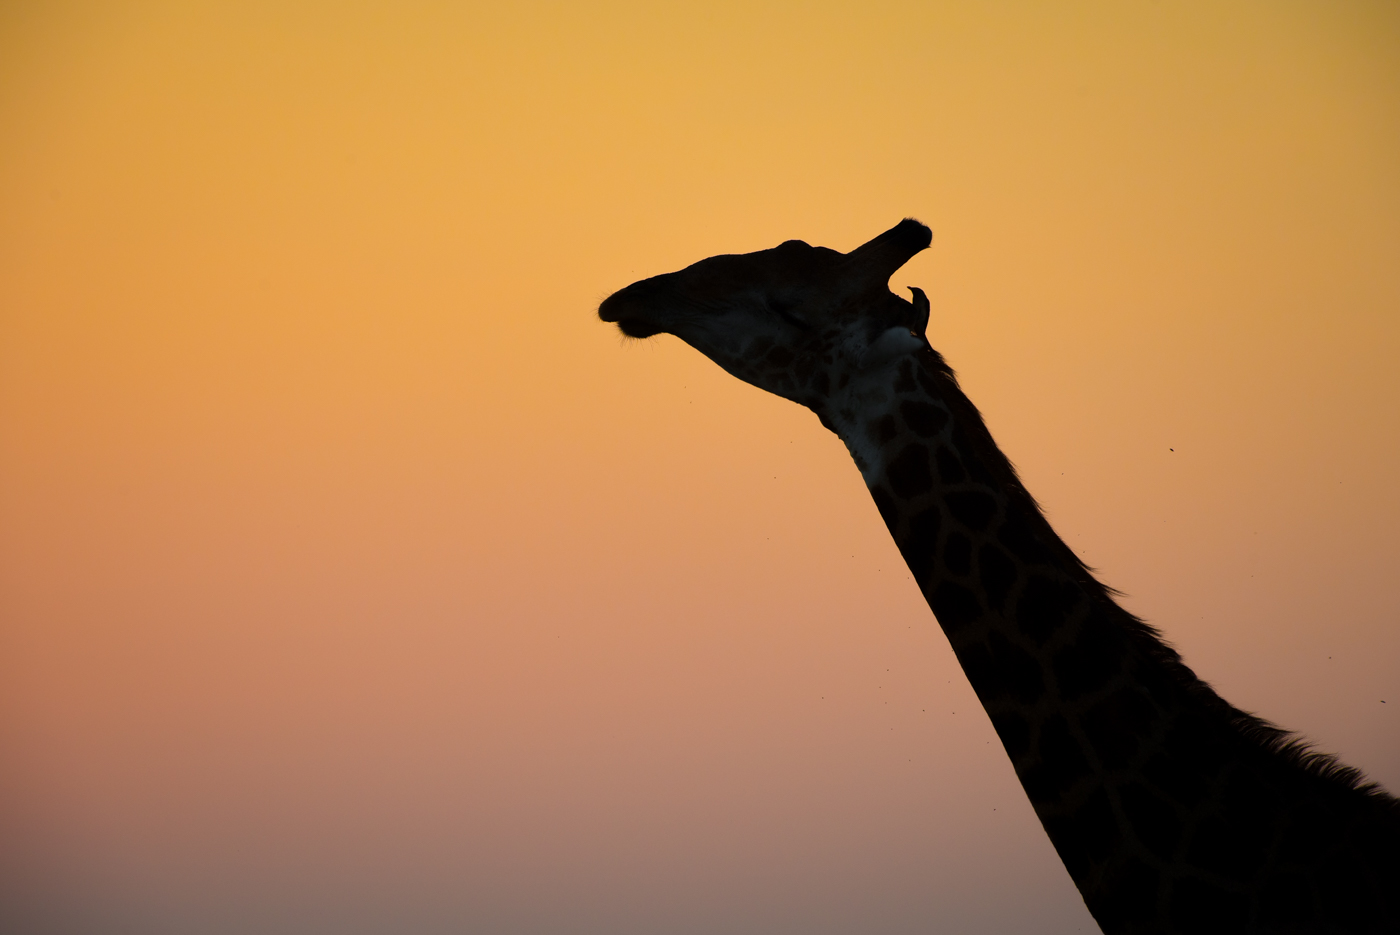 giraffe silhouette and oxpecker, SC